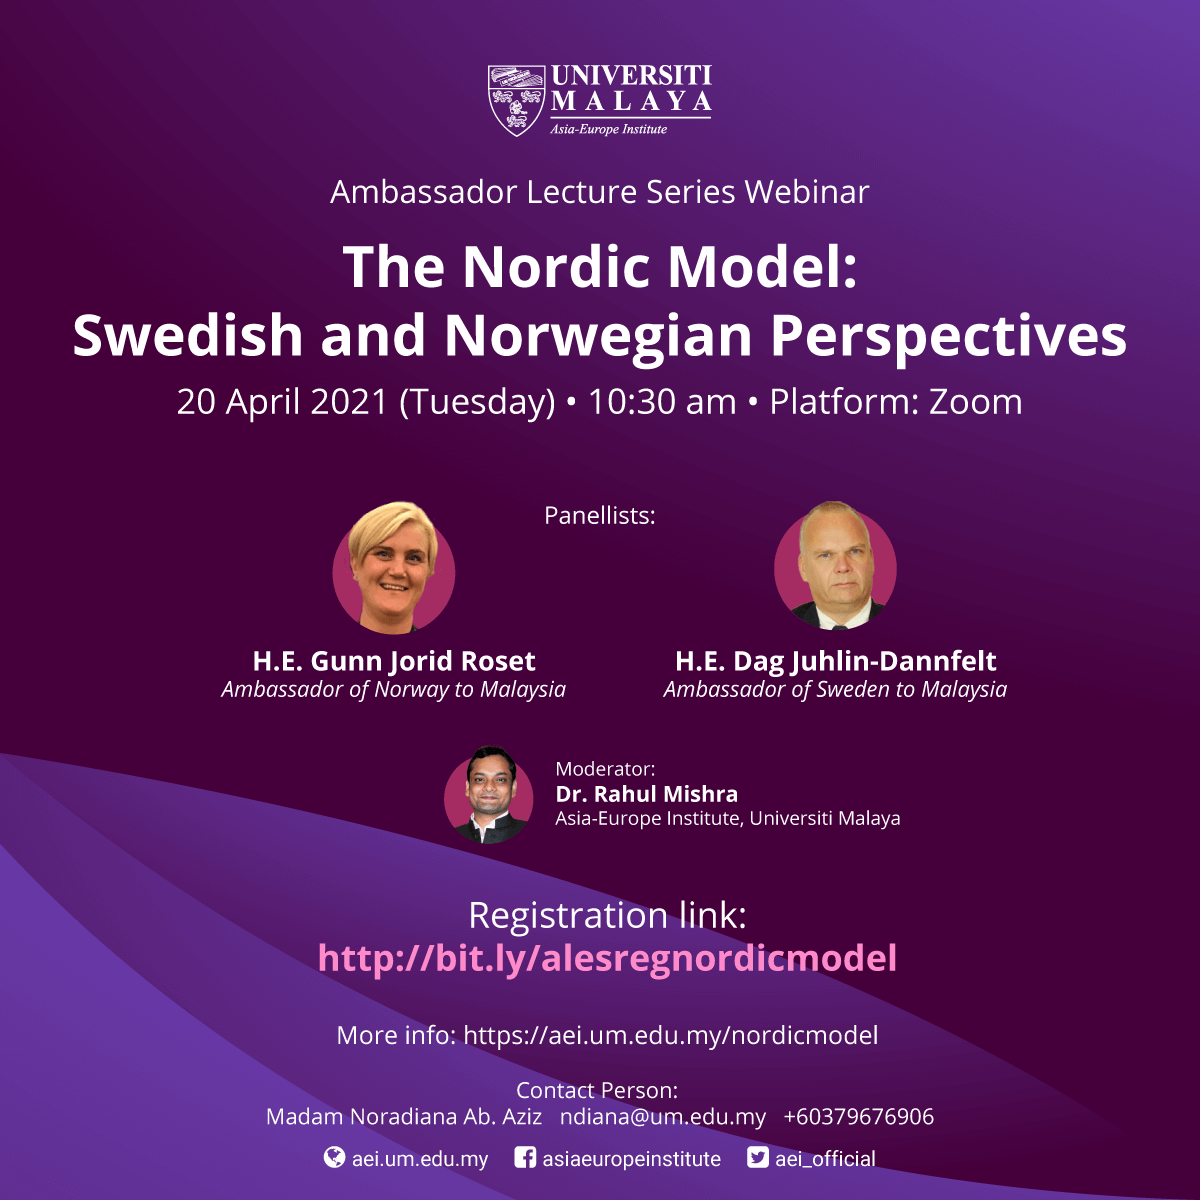 The Nordic Model: Swedish and Norwegian Perspectives